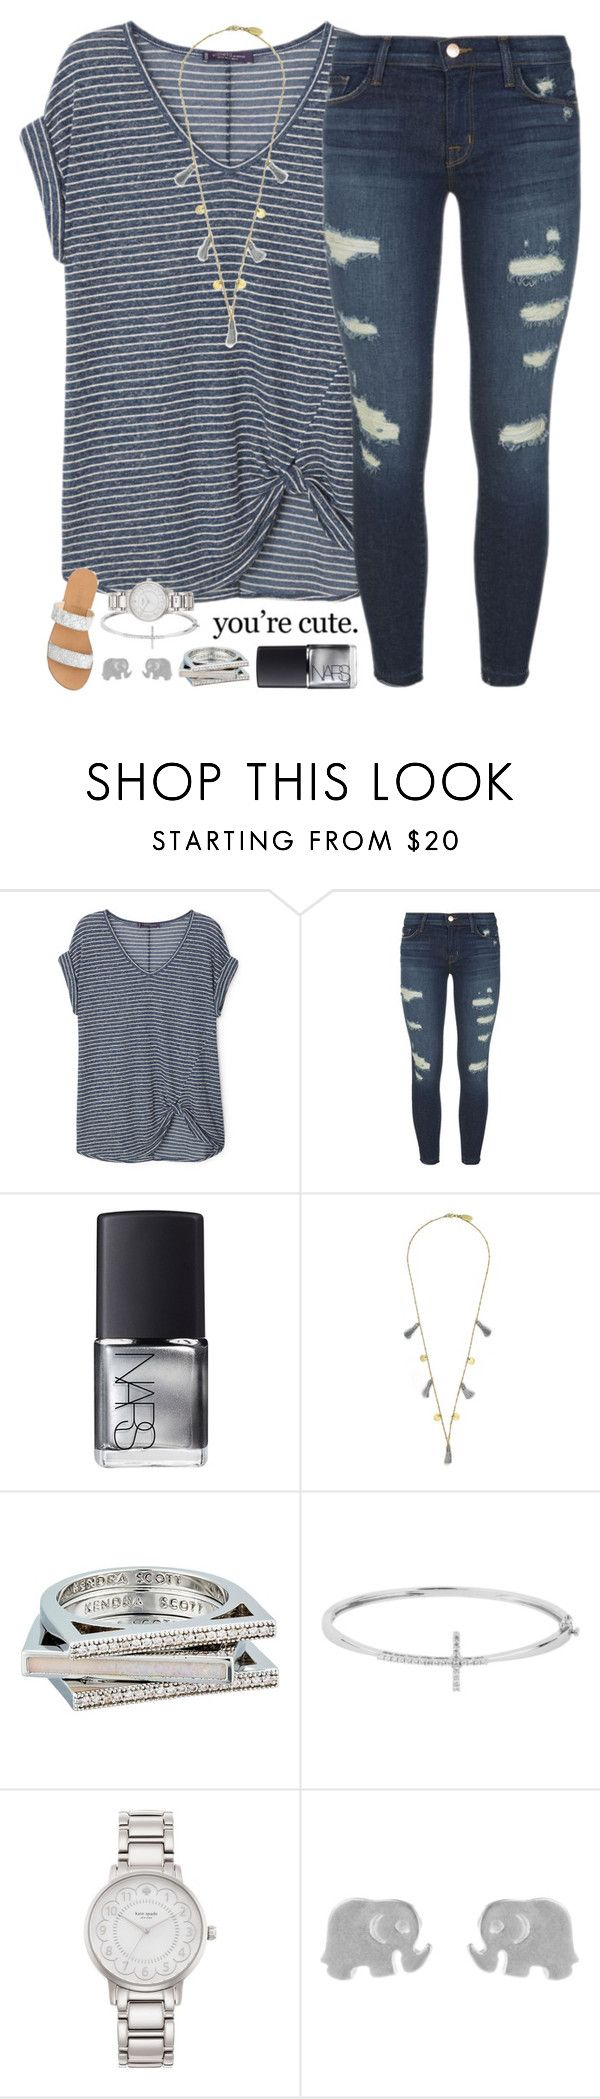 """You're cute."" by lilypackard ❤ liked on Polyvore featuring Violeta by Mango, J Brand, NARS Cosmetics, Feather & Stone, Kendra Scott, Reeds Jewelers, Kate Spade, Dogeared and J.Crew"